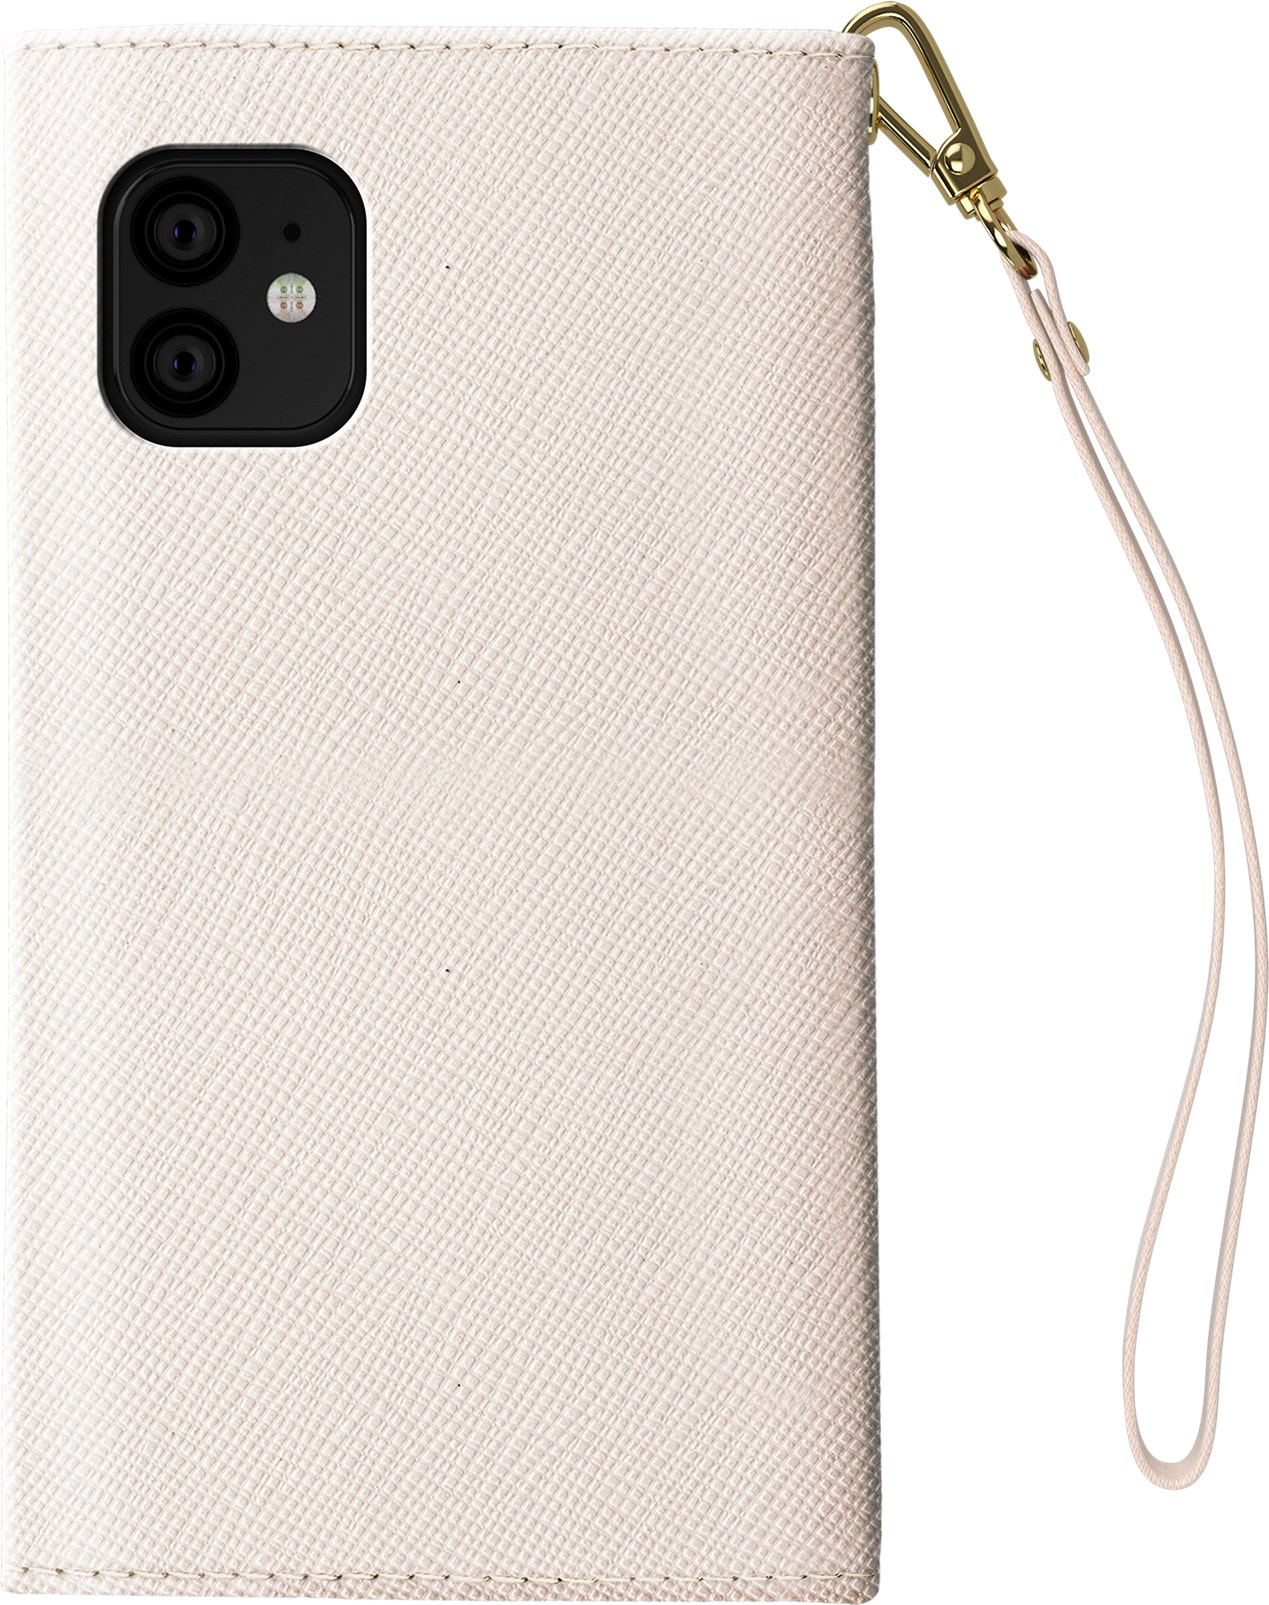 iDeal of Sweden Ideal Mayfair Clutch Iphone 11 Beige